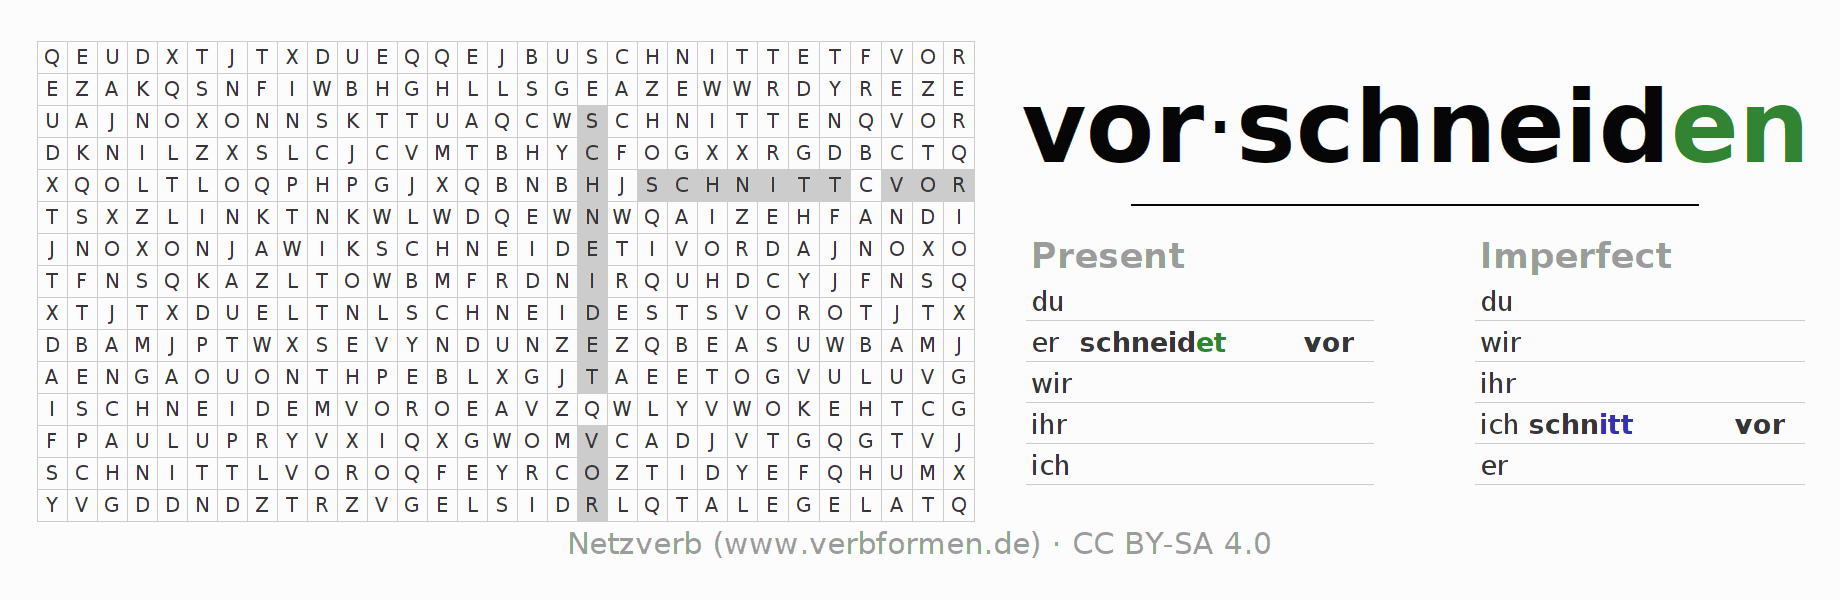 Word search puzzle for the conjugation of the verb vorschneiden